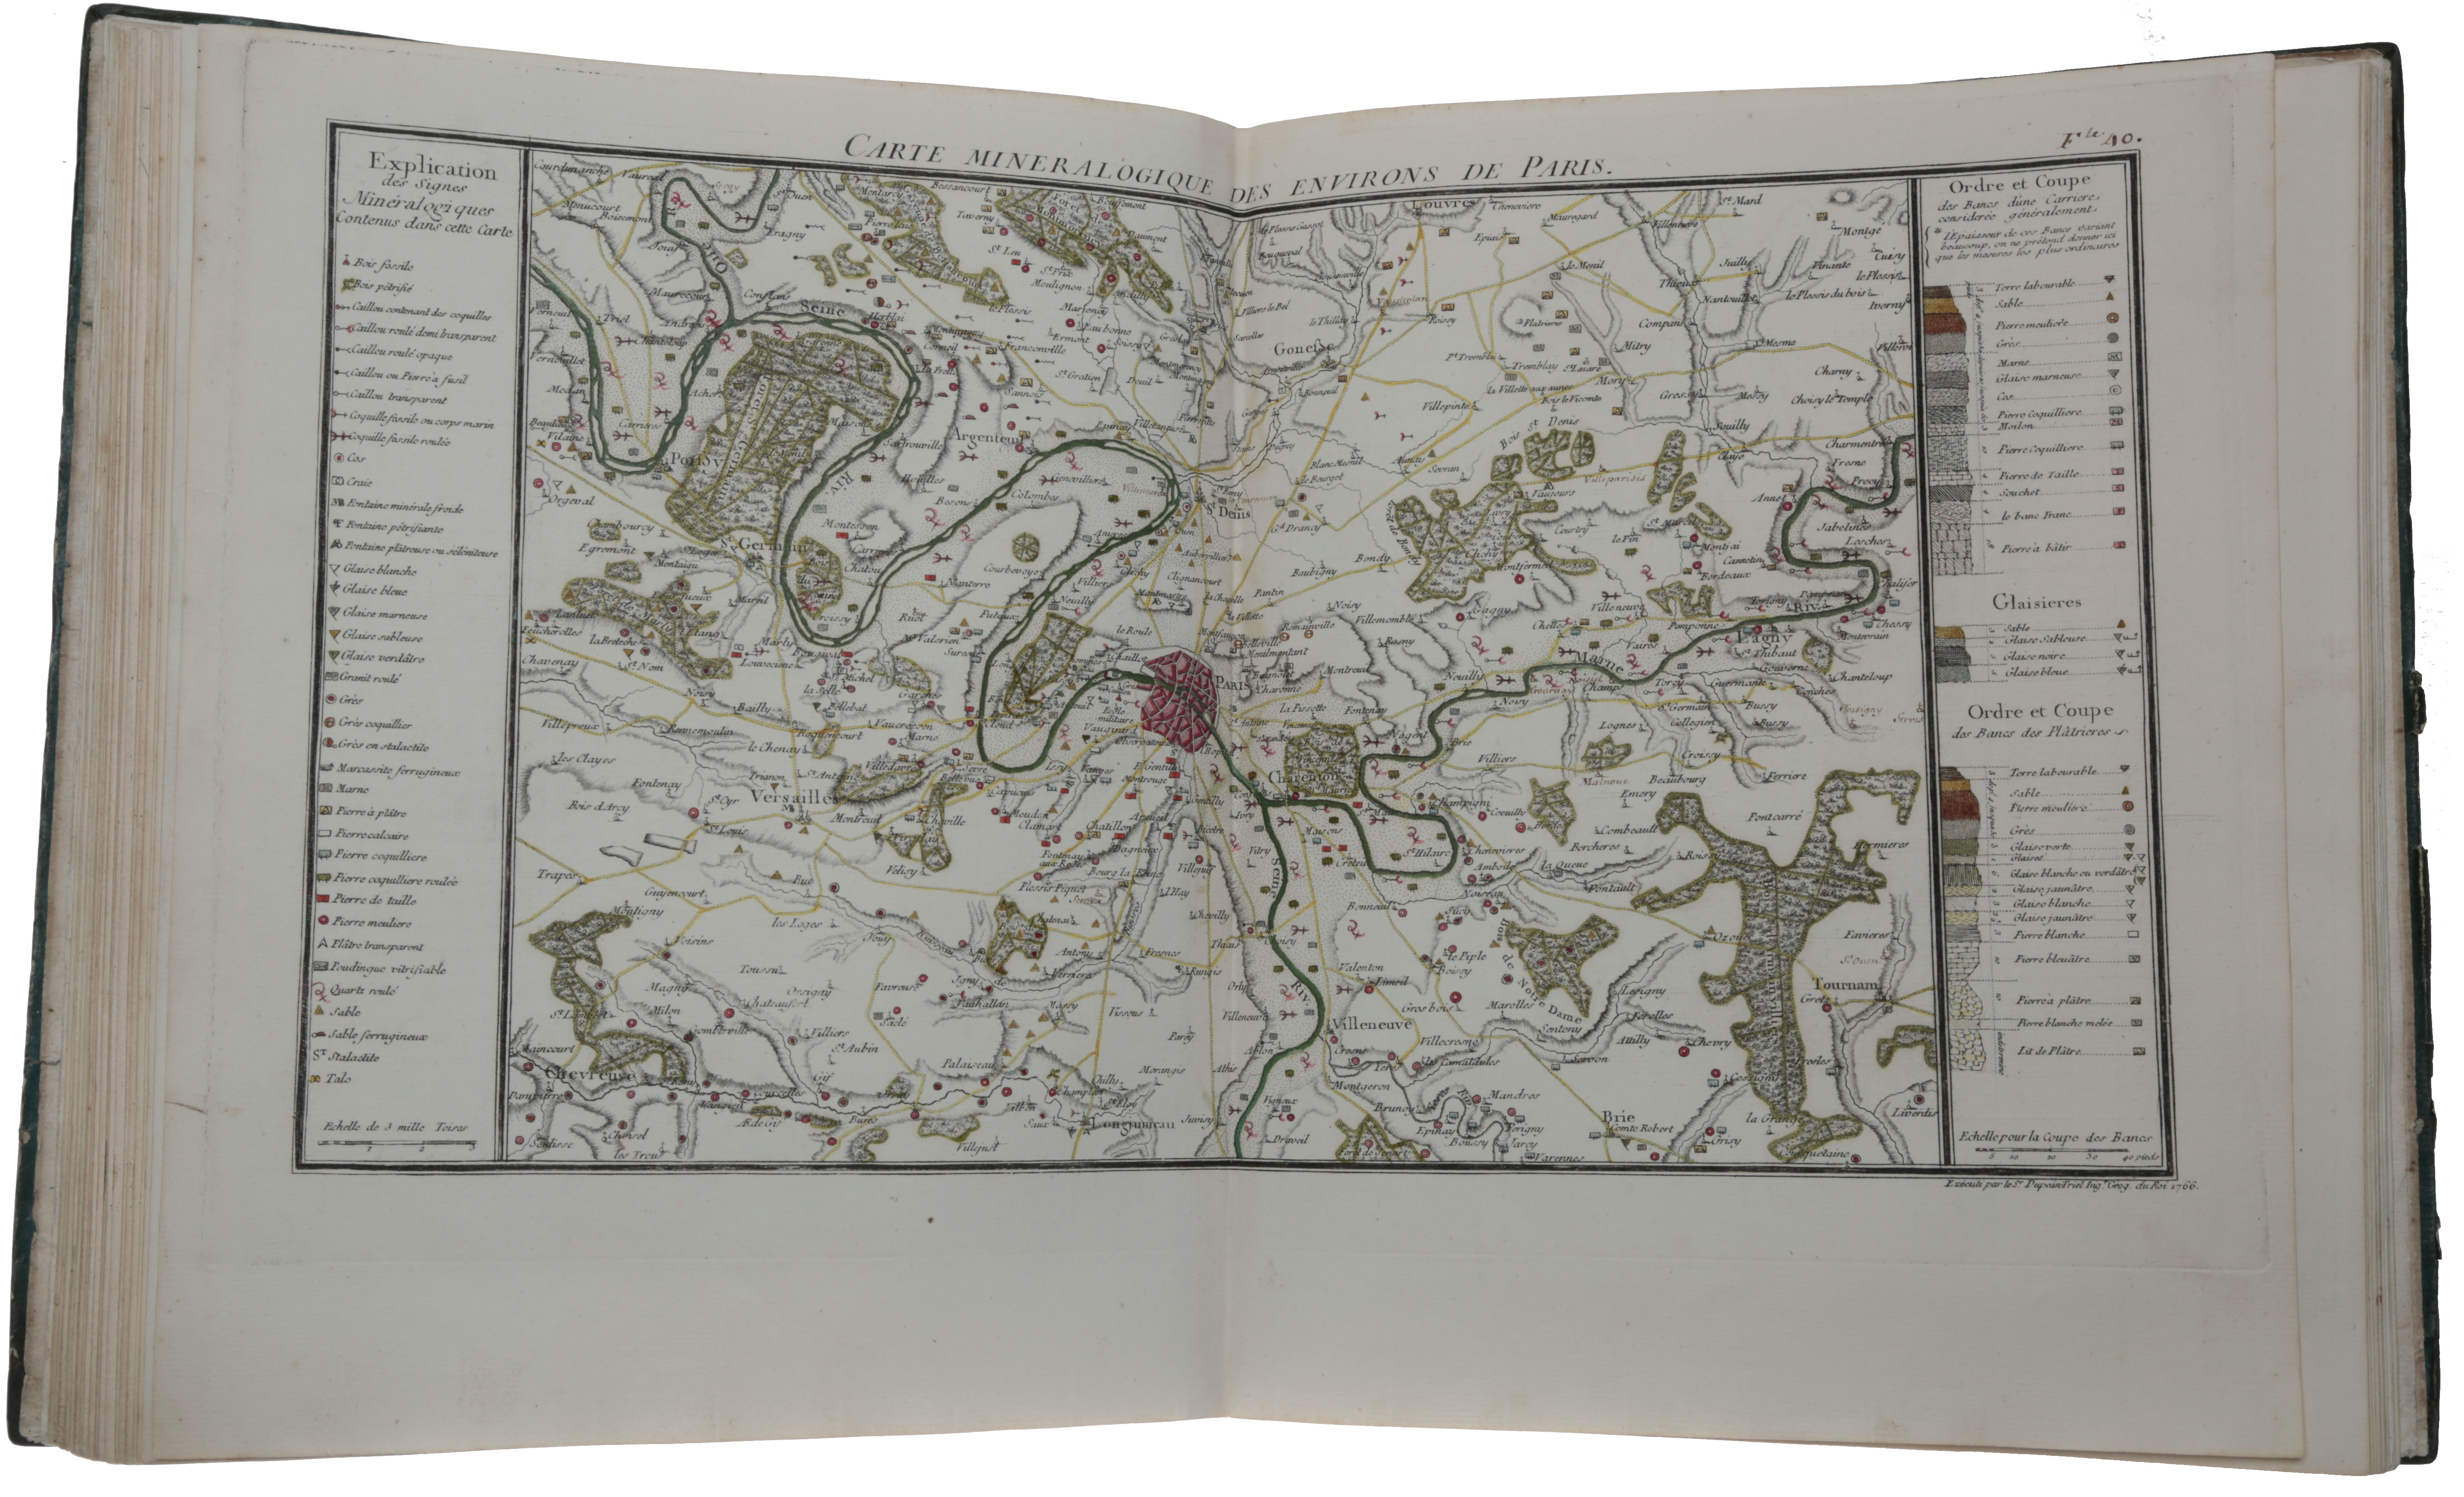 A collection of 33 hand-coloured mineralogical maps of France prepared for the first geological atlas. Antoine-Laurent LAVOISIER, Jean-Étienne GUETTARD, Antoine-Grimoald MONNET.